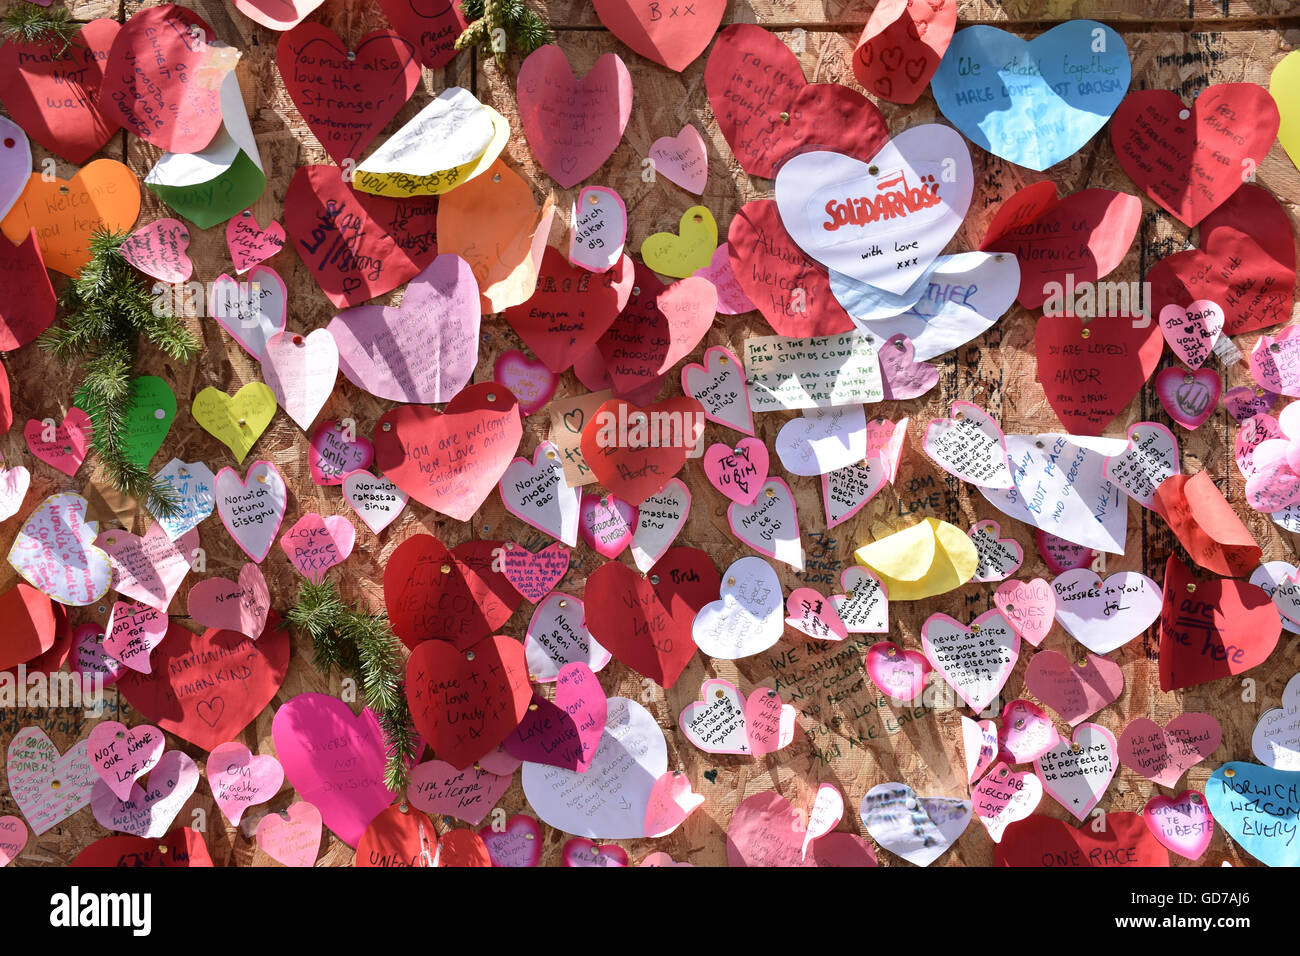 Messages of support following arson attack on The Village Shop, Romanian foodstore in Norwich, UK July 2016 - Stock Image